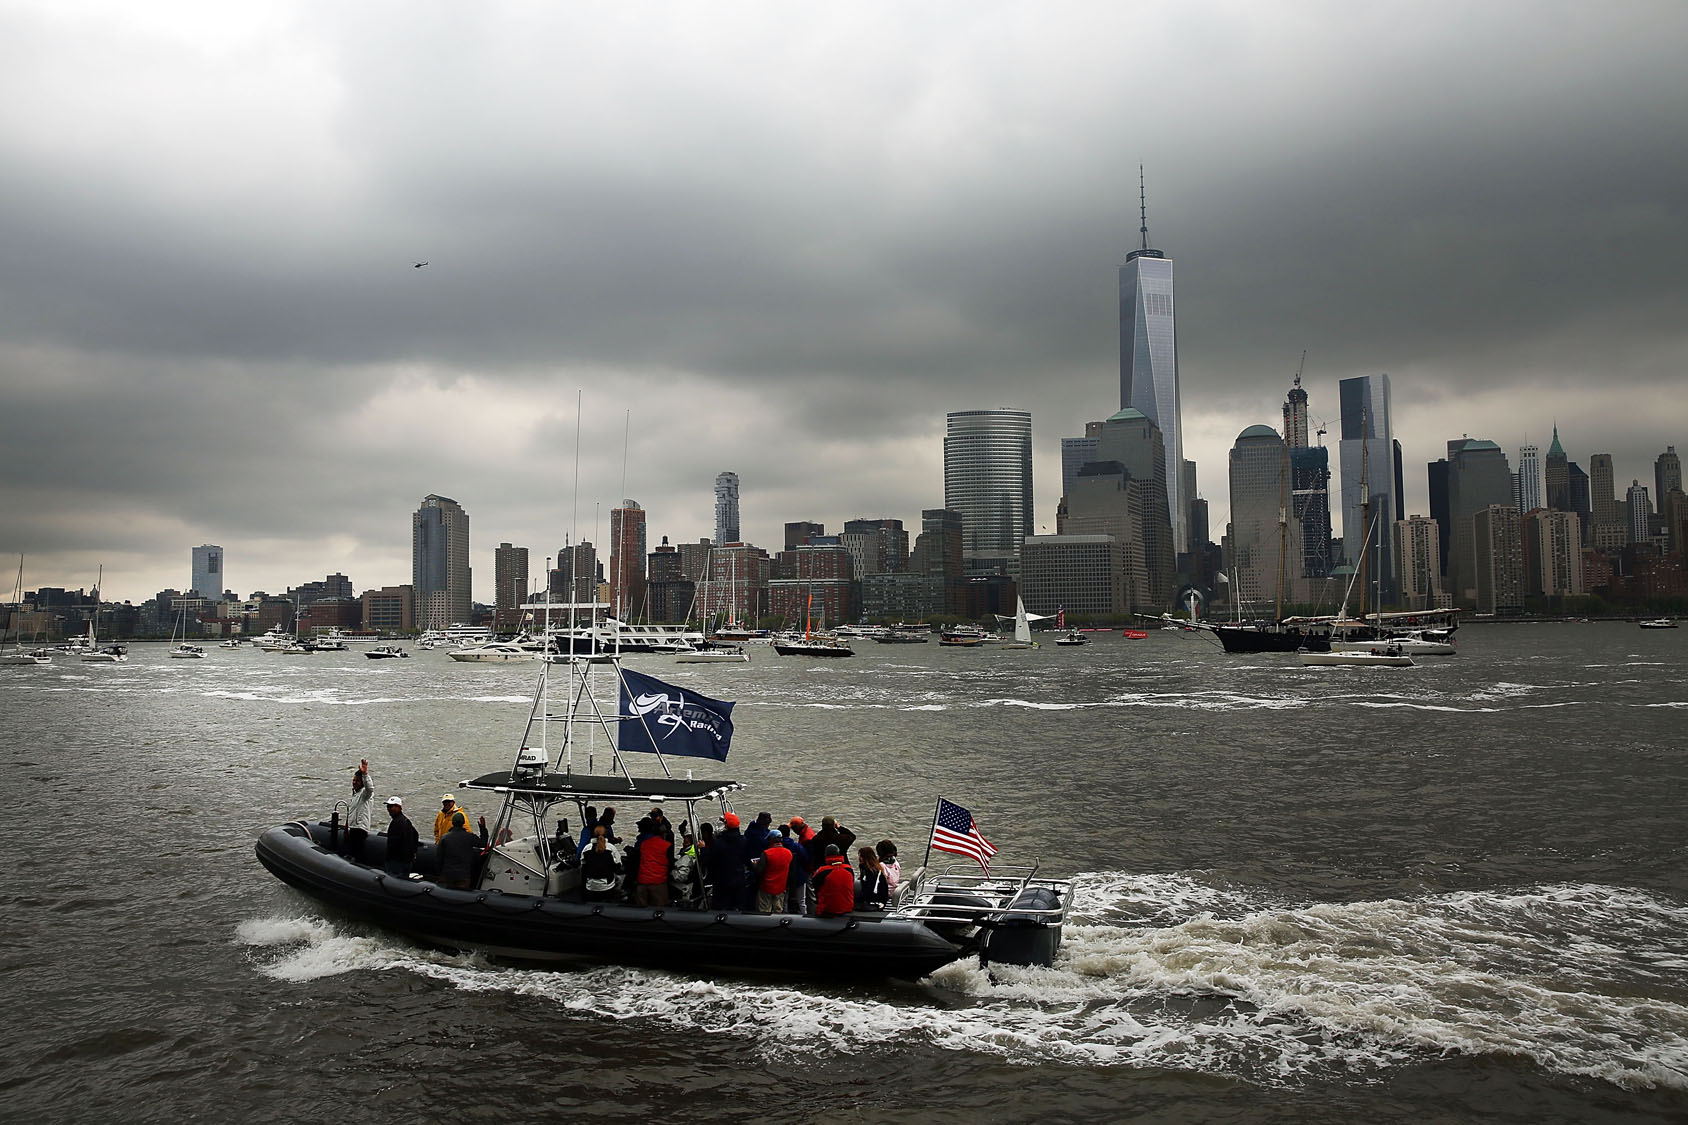 Sailors compete in America's Cup World Series New York